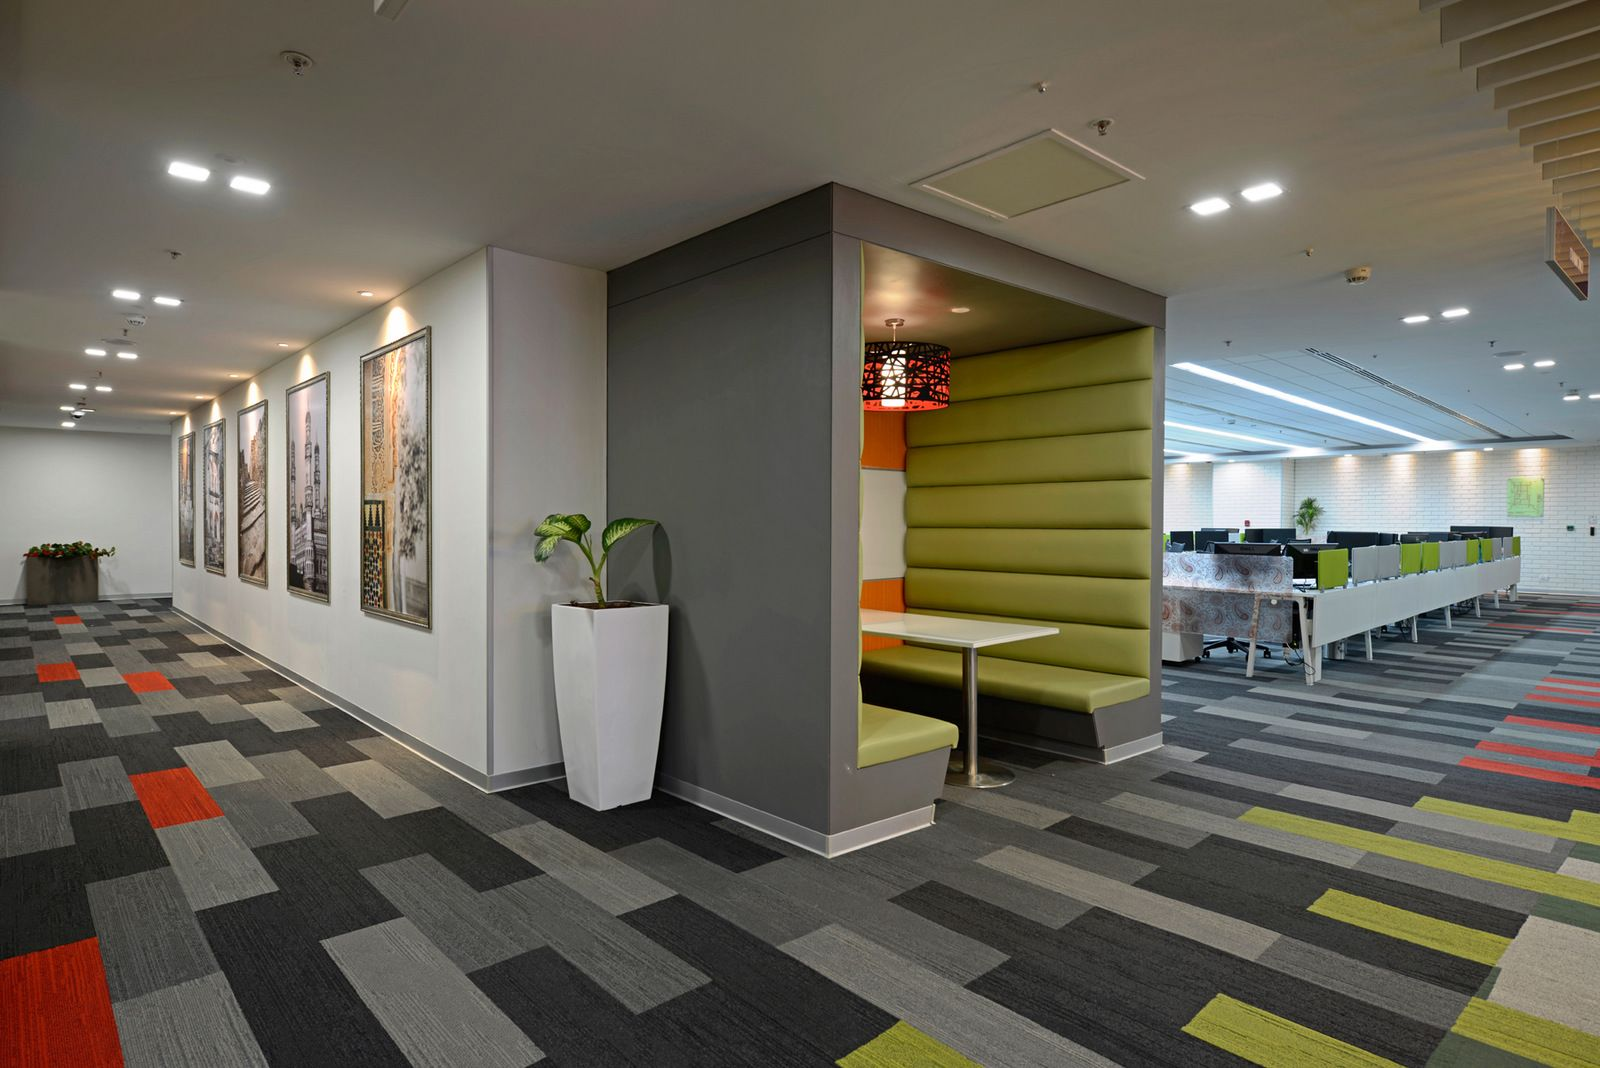 Coolest Office Design pegasystems-office-design-1 | interface | pinterest | office